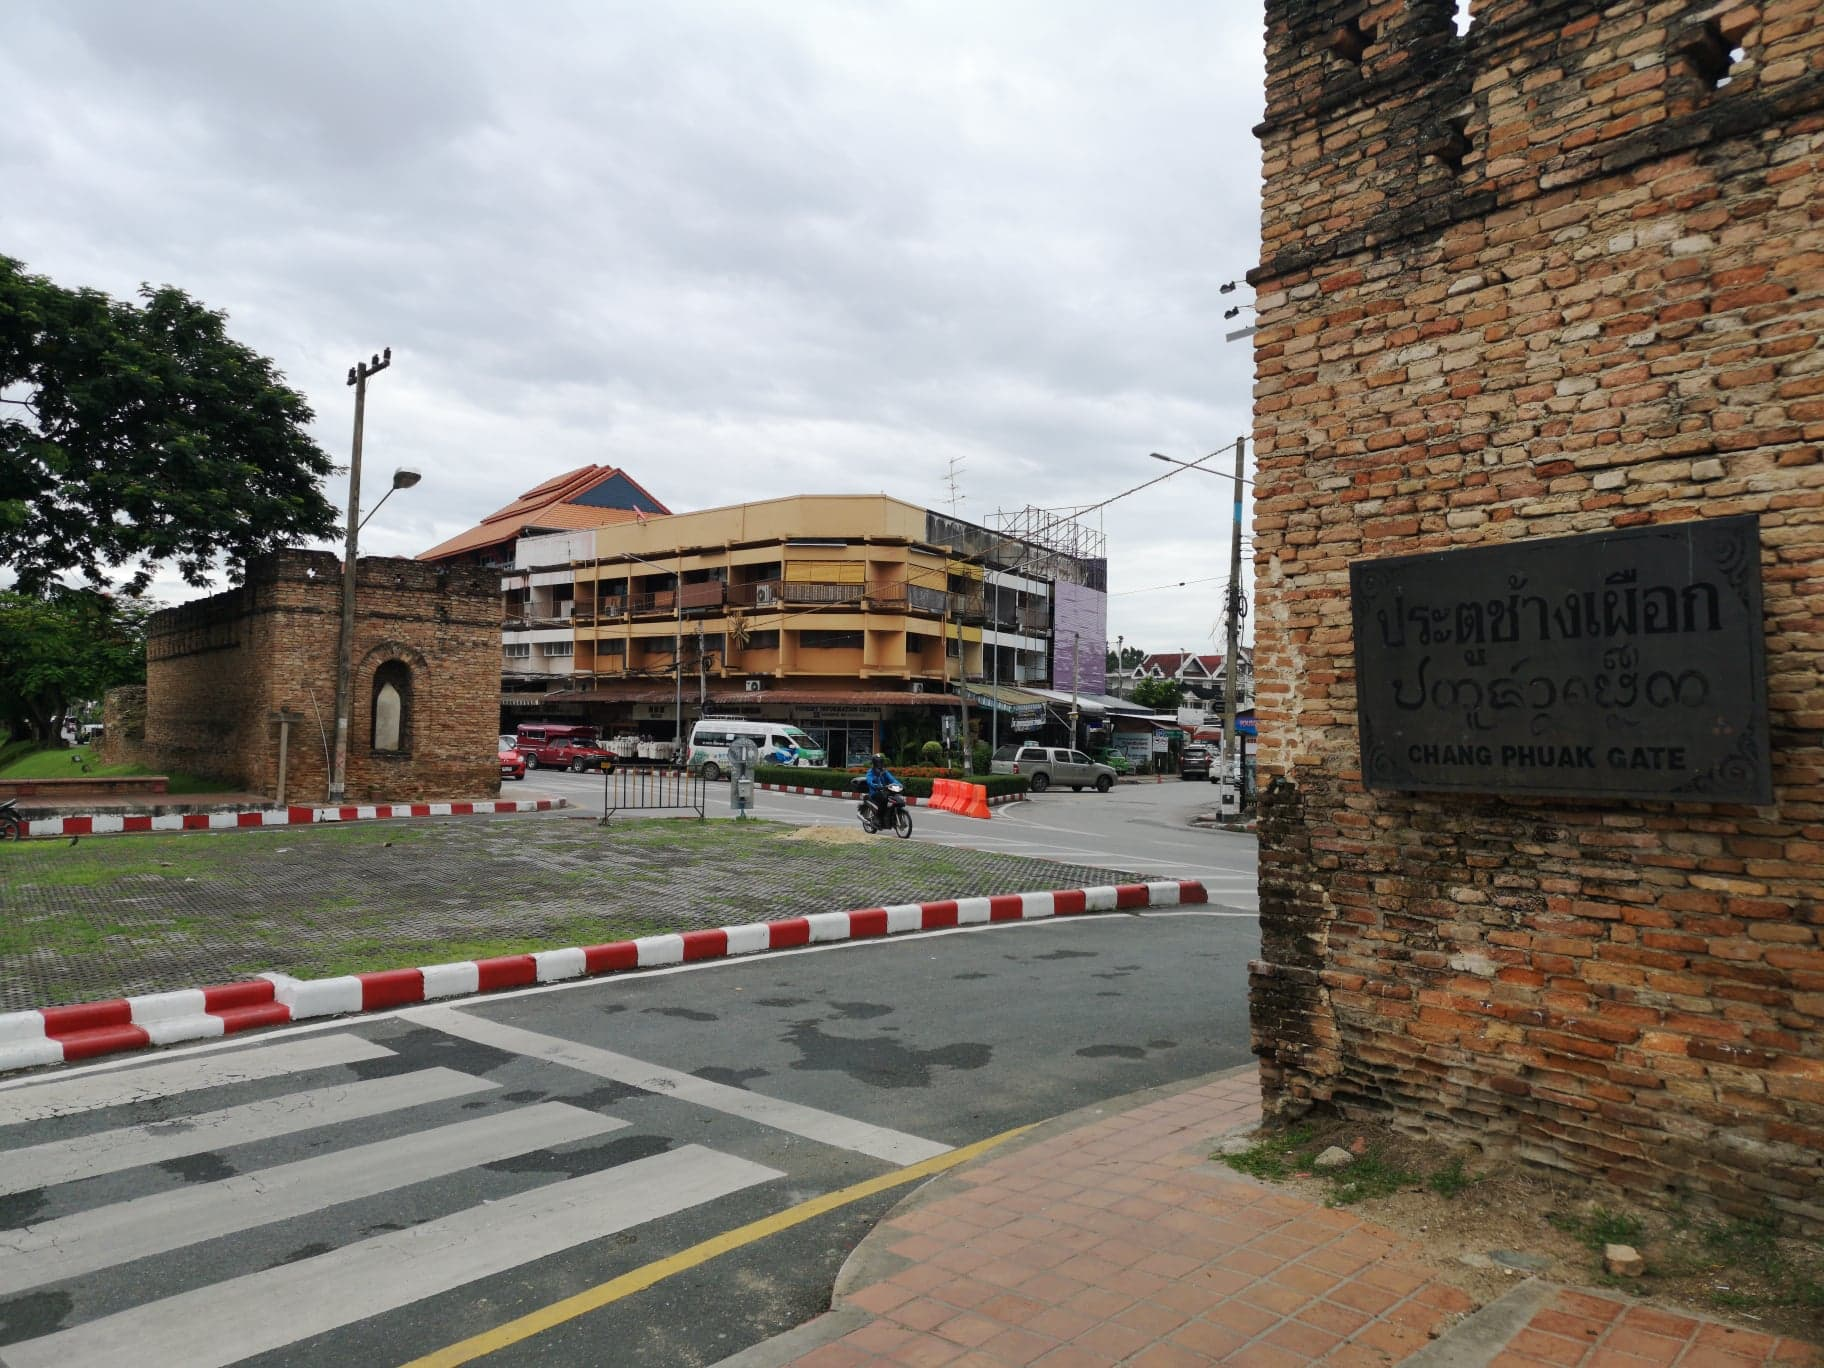 The Chang Phuak Gate, the Northern Gate to Chiang Mai City.jpg